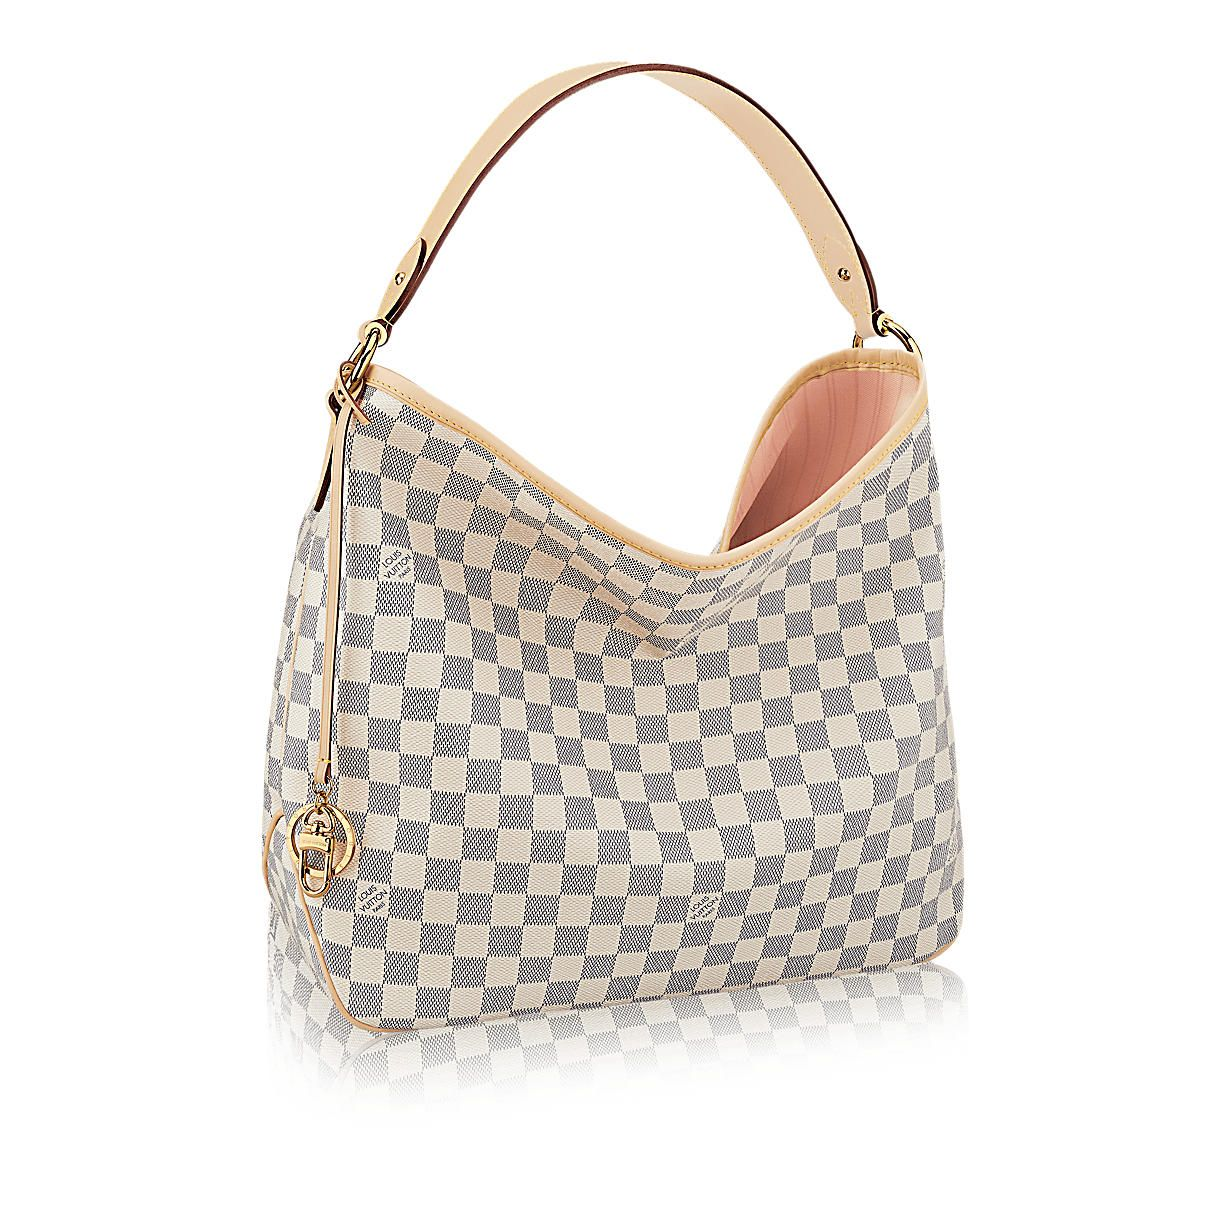 be34b9291cc8 Delightful MM Toile Damier Azur Femme Sacs à main   LOUIS VUITTON ...